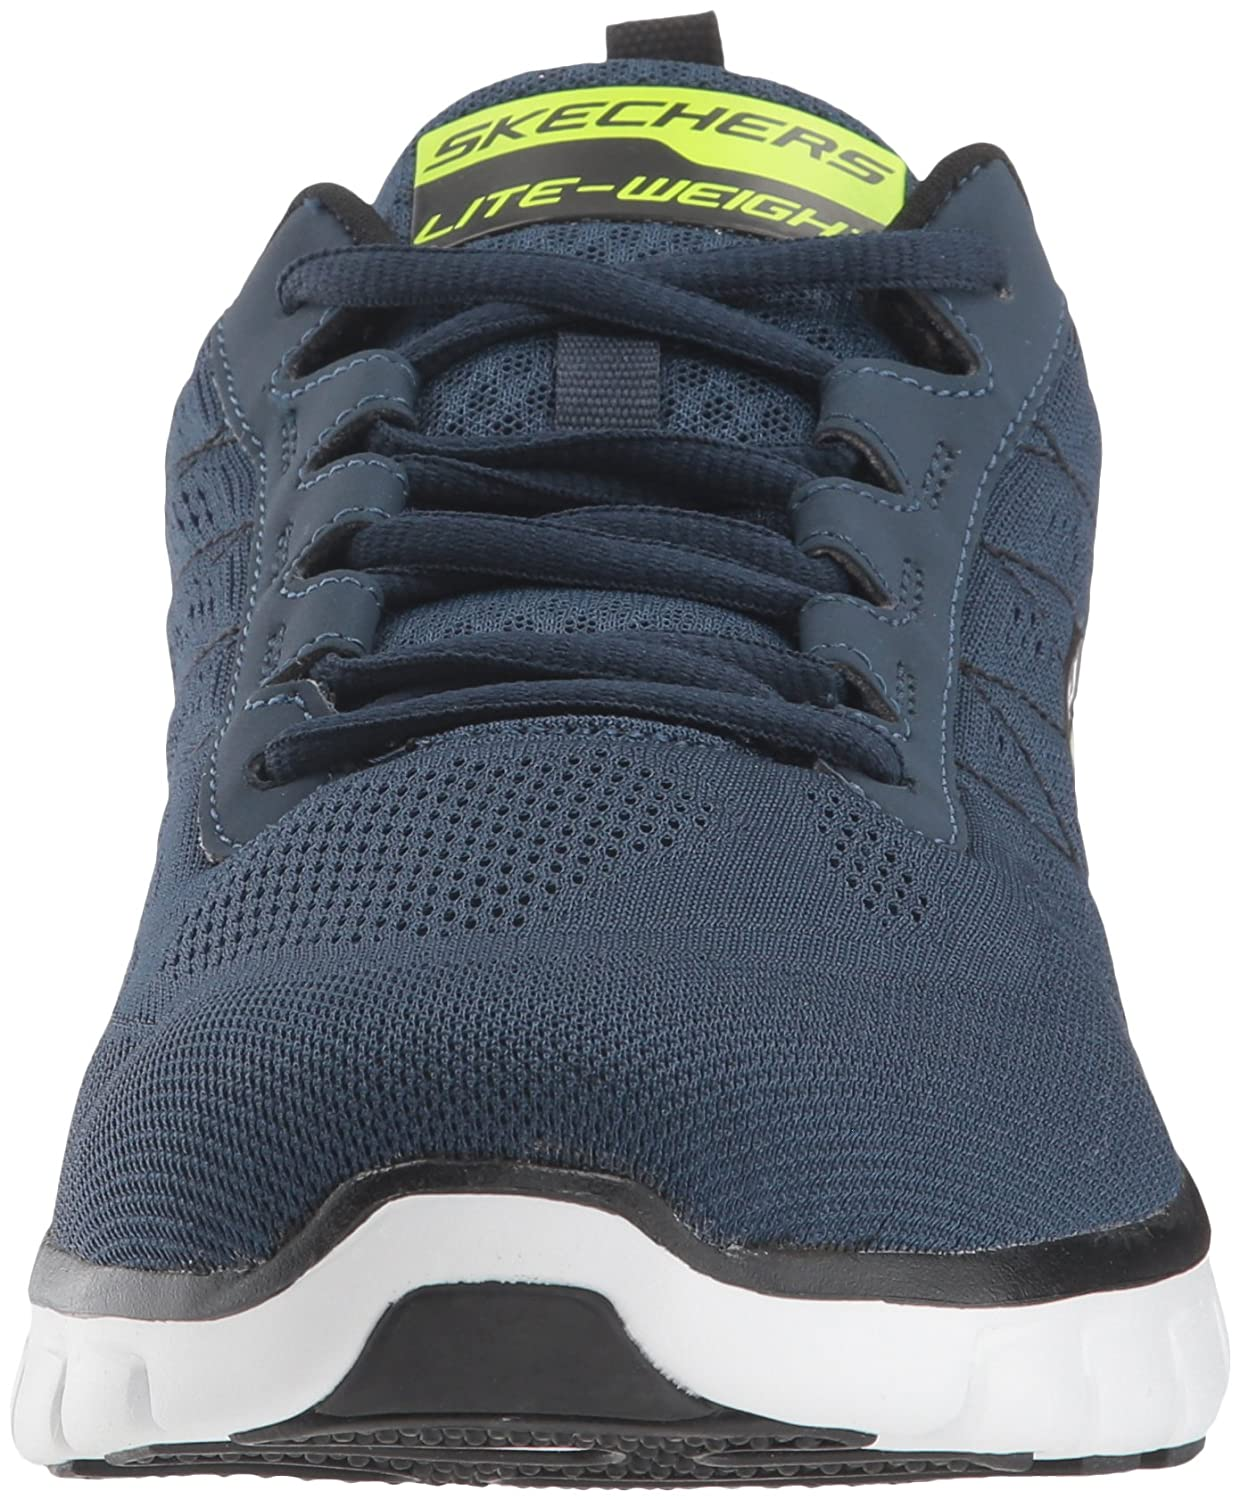 Skechers Sport Men's Synergy Power Switch Sneaker Memory Foam Athletic Training Sneaker Switch B00G9Y2KWW 8.5 D(M) US|Navy/Black dcc5e2